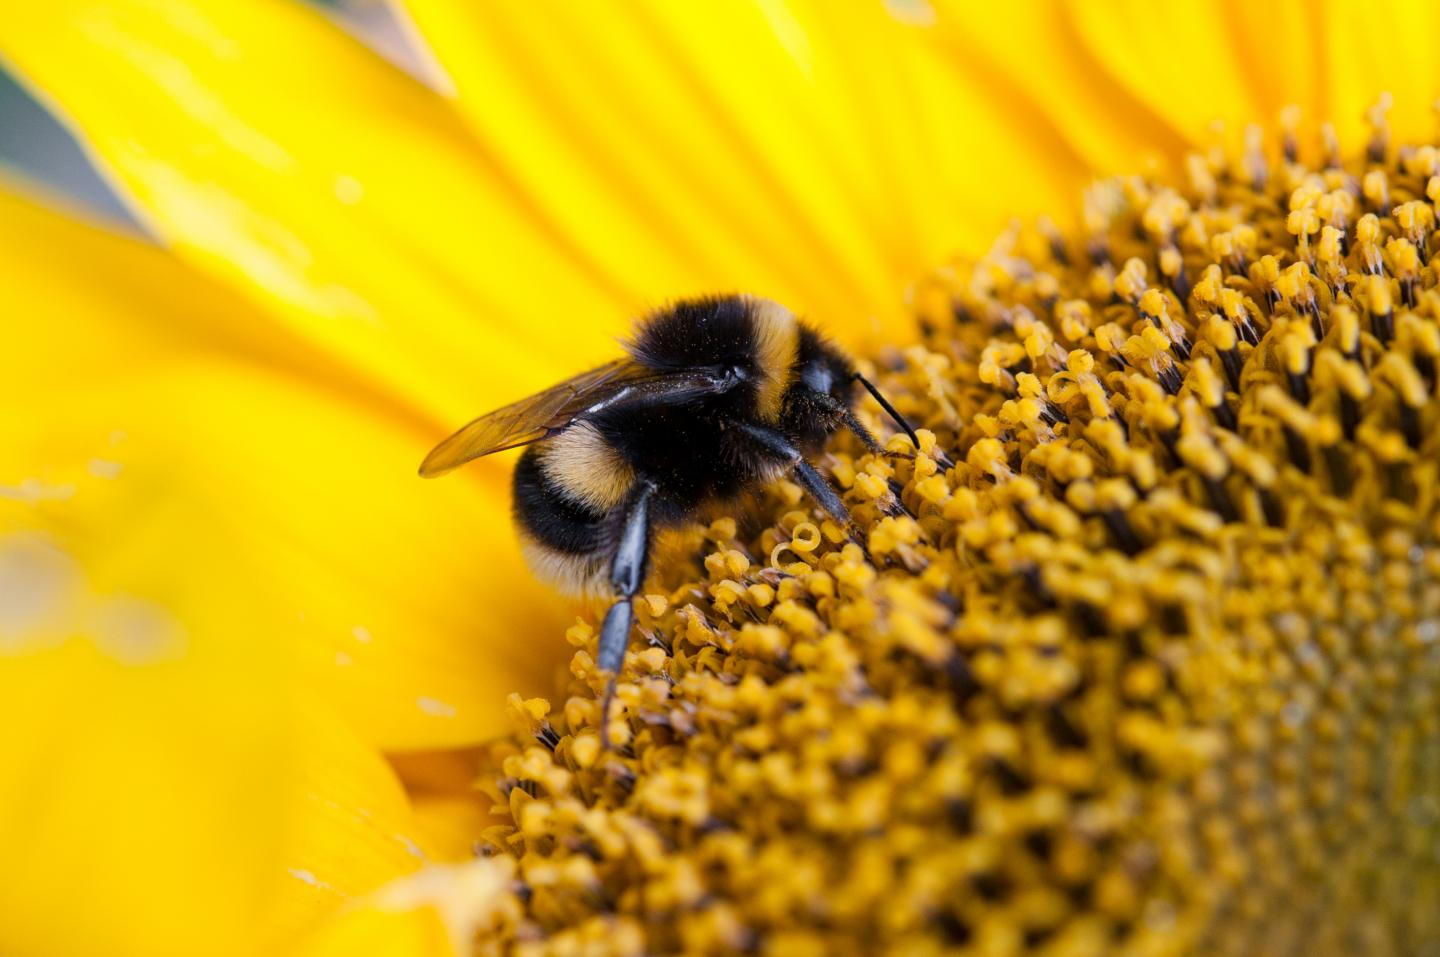 CATCH THE BUZZ – Small Farms Benefit Significantly From a Few Extra Pollinators